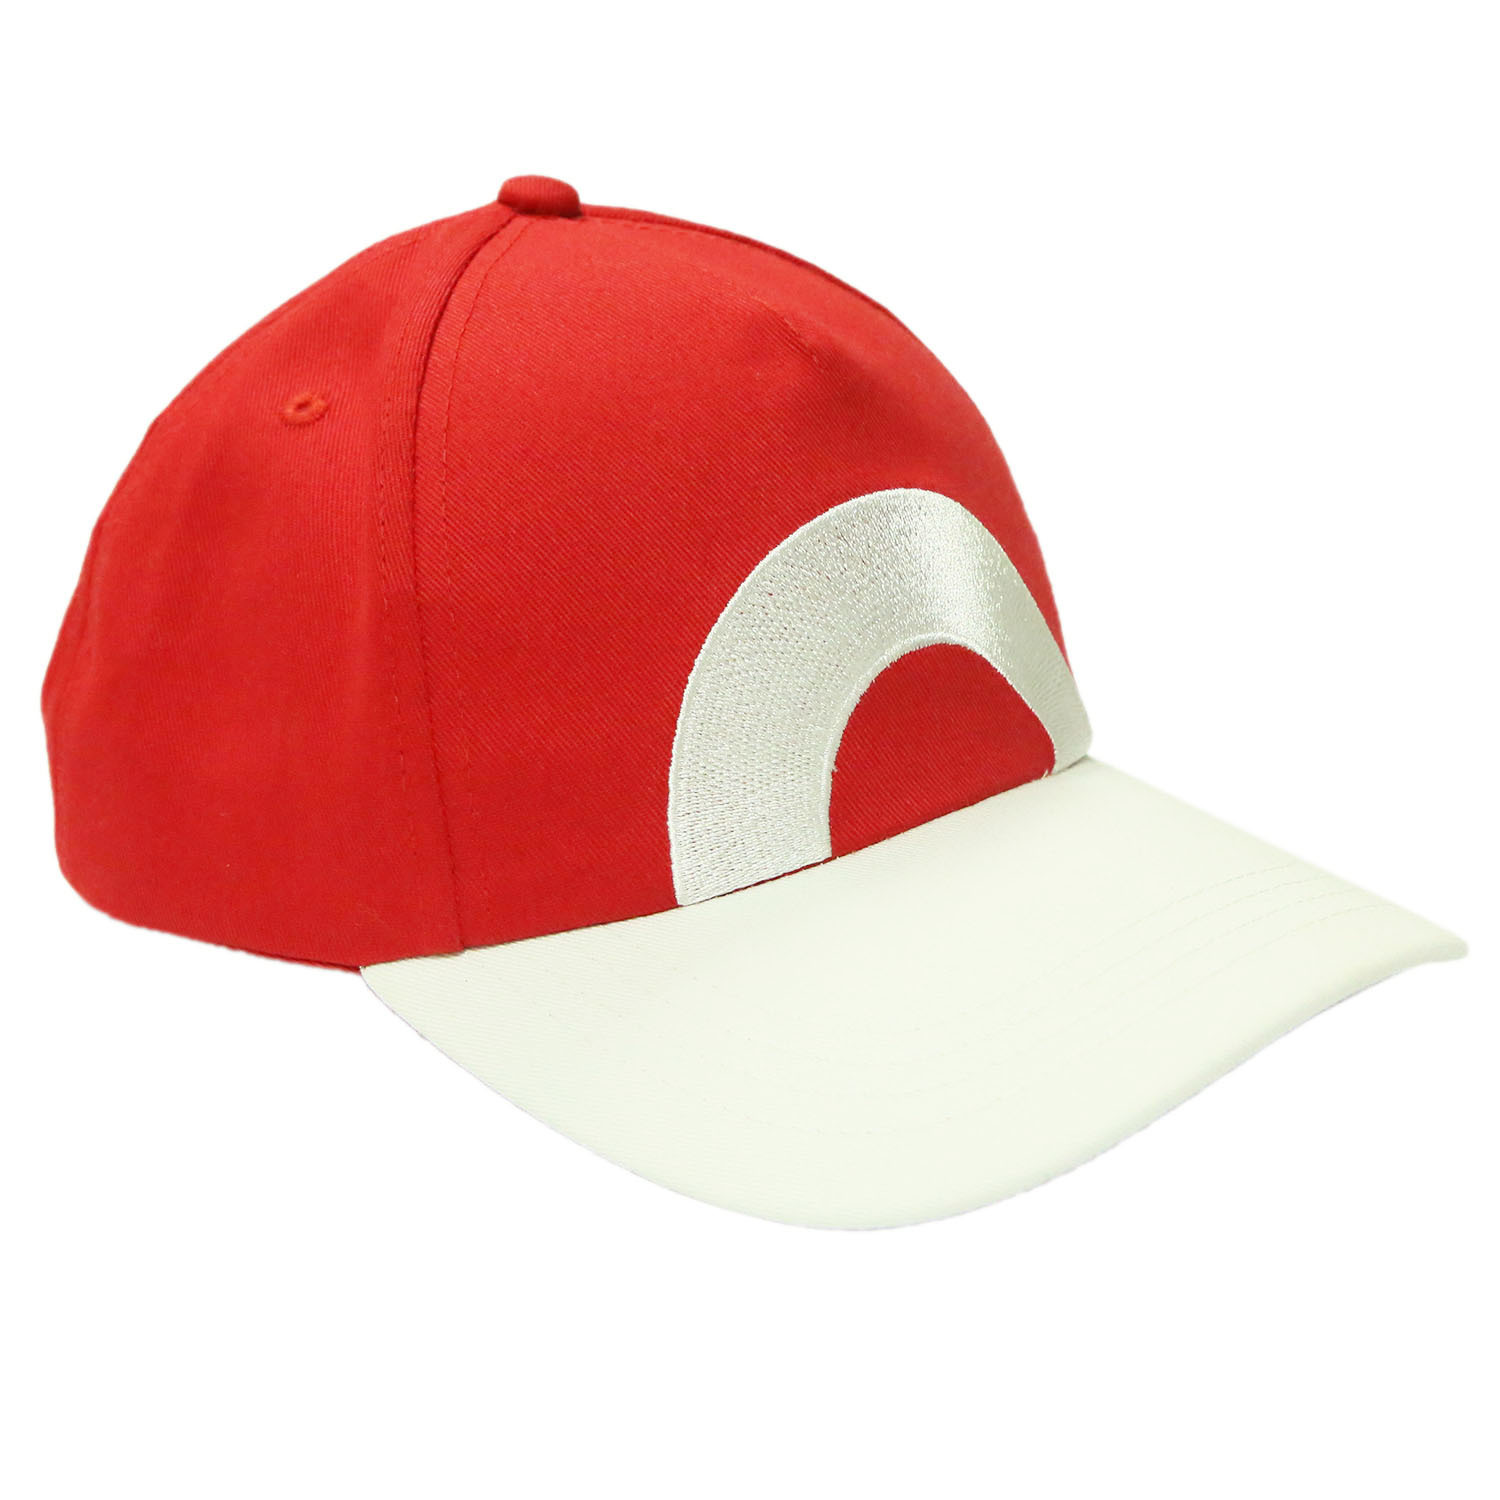 cce09925791 3026 1047 a0 2. 3026 1047 a0 2. Previous. Pokemon Ash Ketchum Hat  Adjustable Baseball Cap New Version Cosplay Accessories